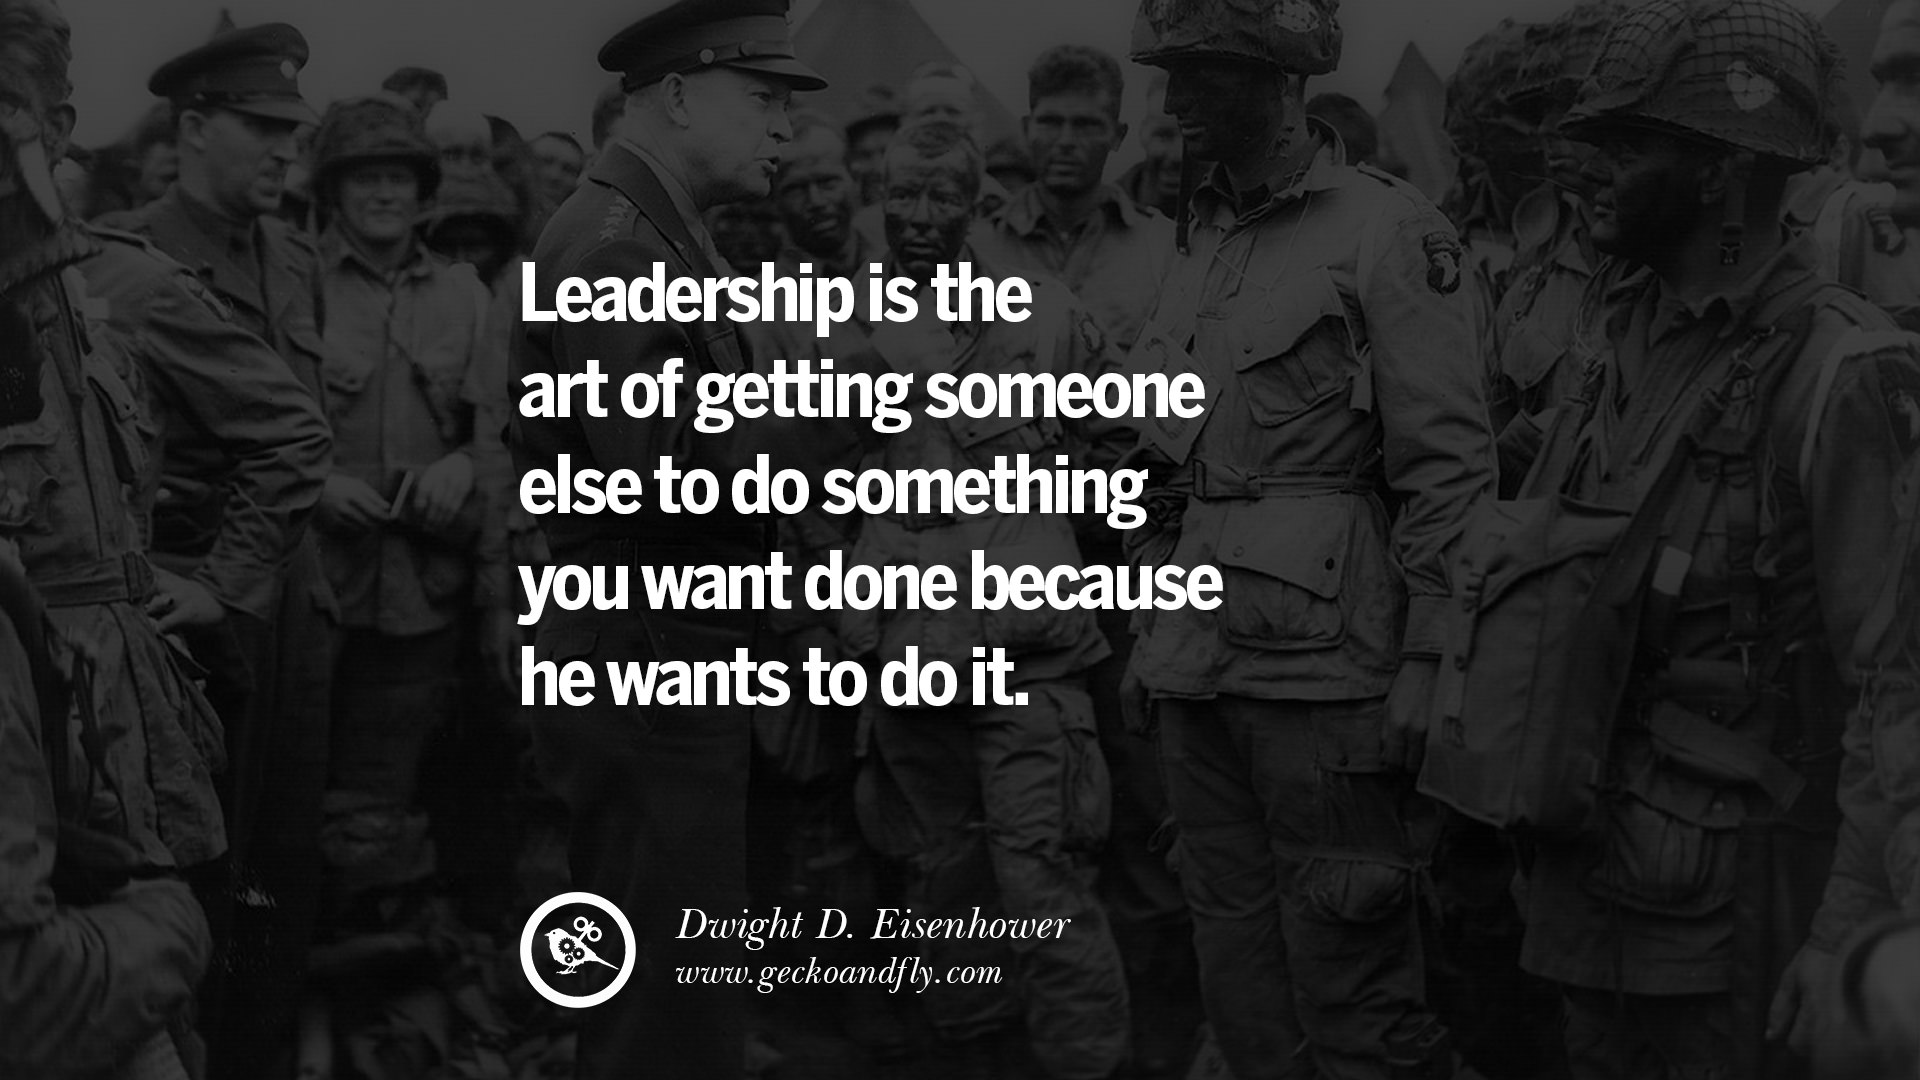 leadership vs management essay uplifting and motivational quotes  uplifting and motivational quotes on management leadership leadership is the art of getting someone else to